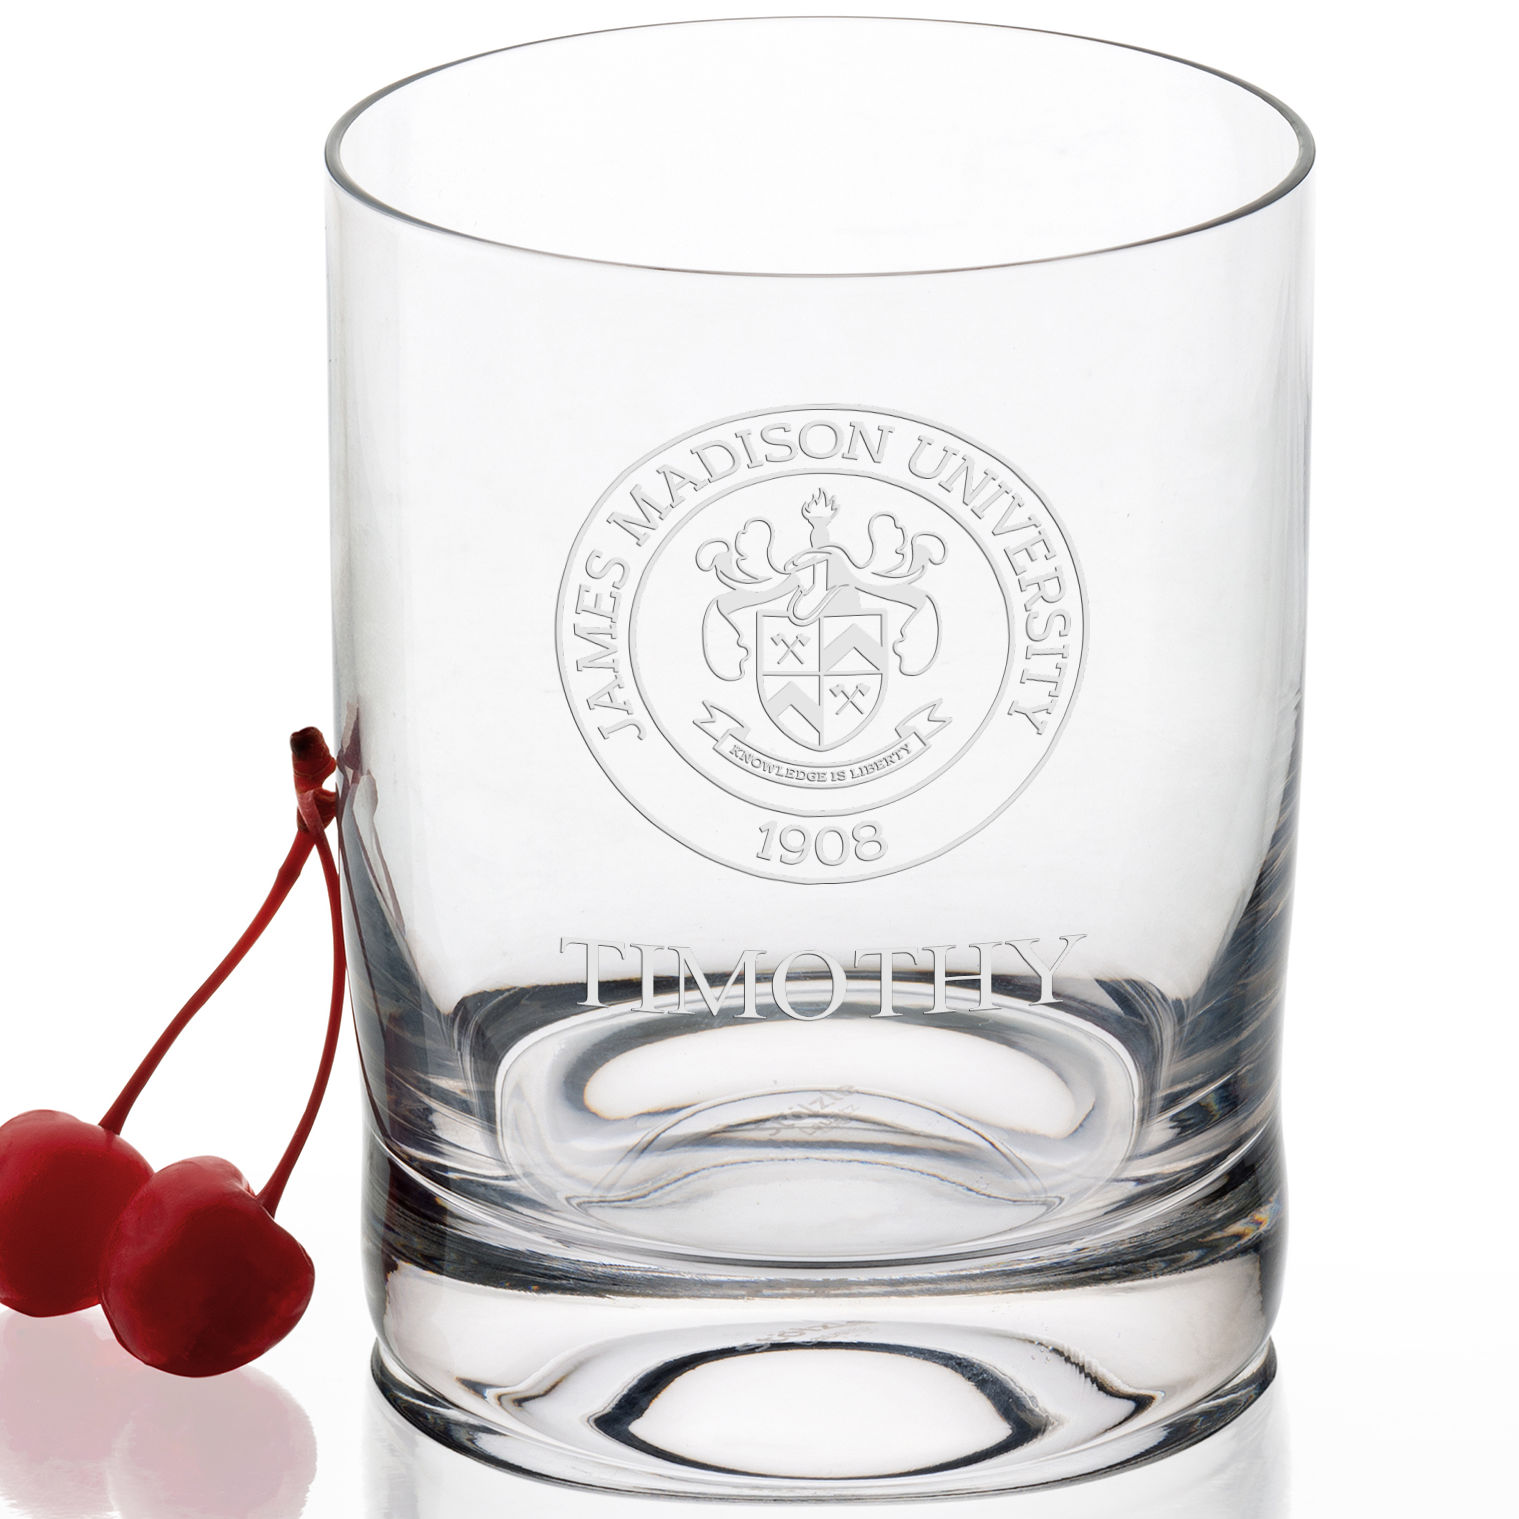 James Madison University Tumbler Glasses - Set of 4 - Image 2